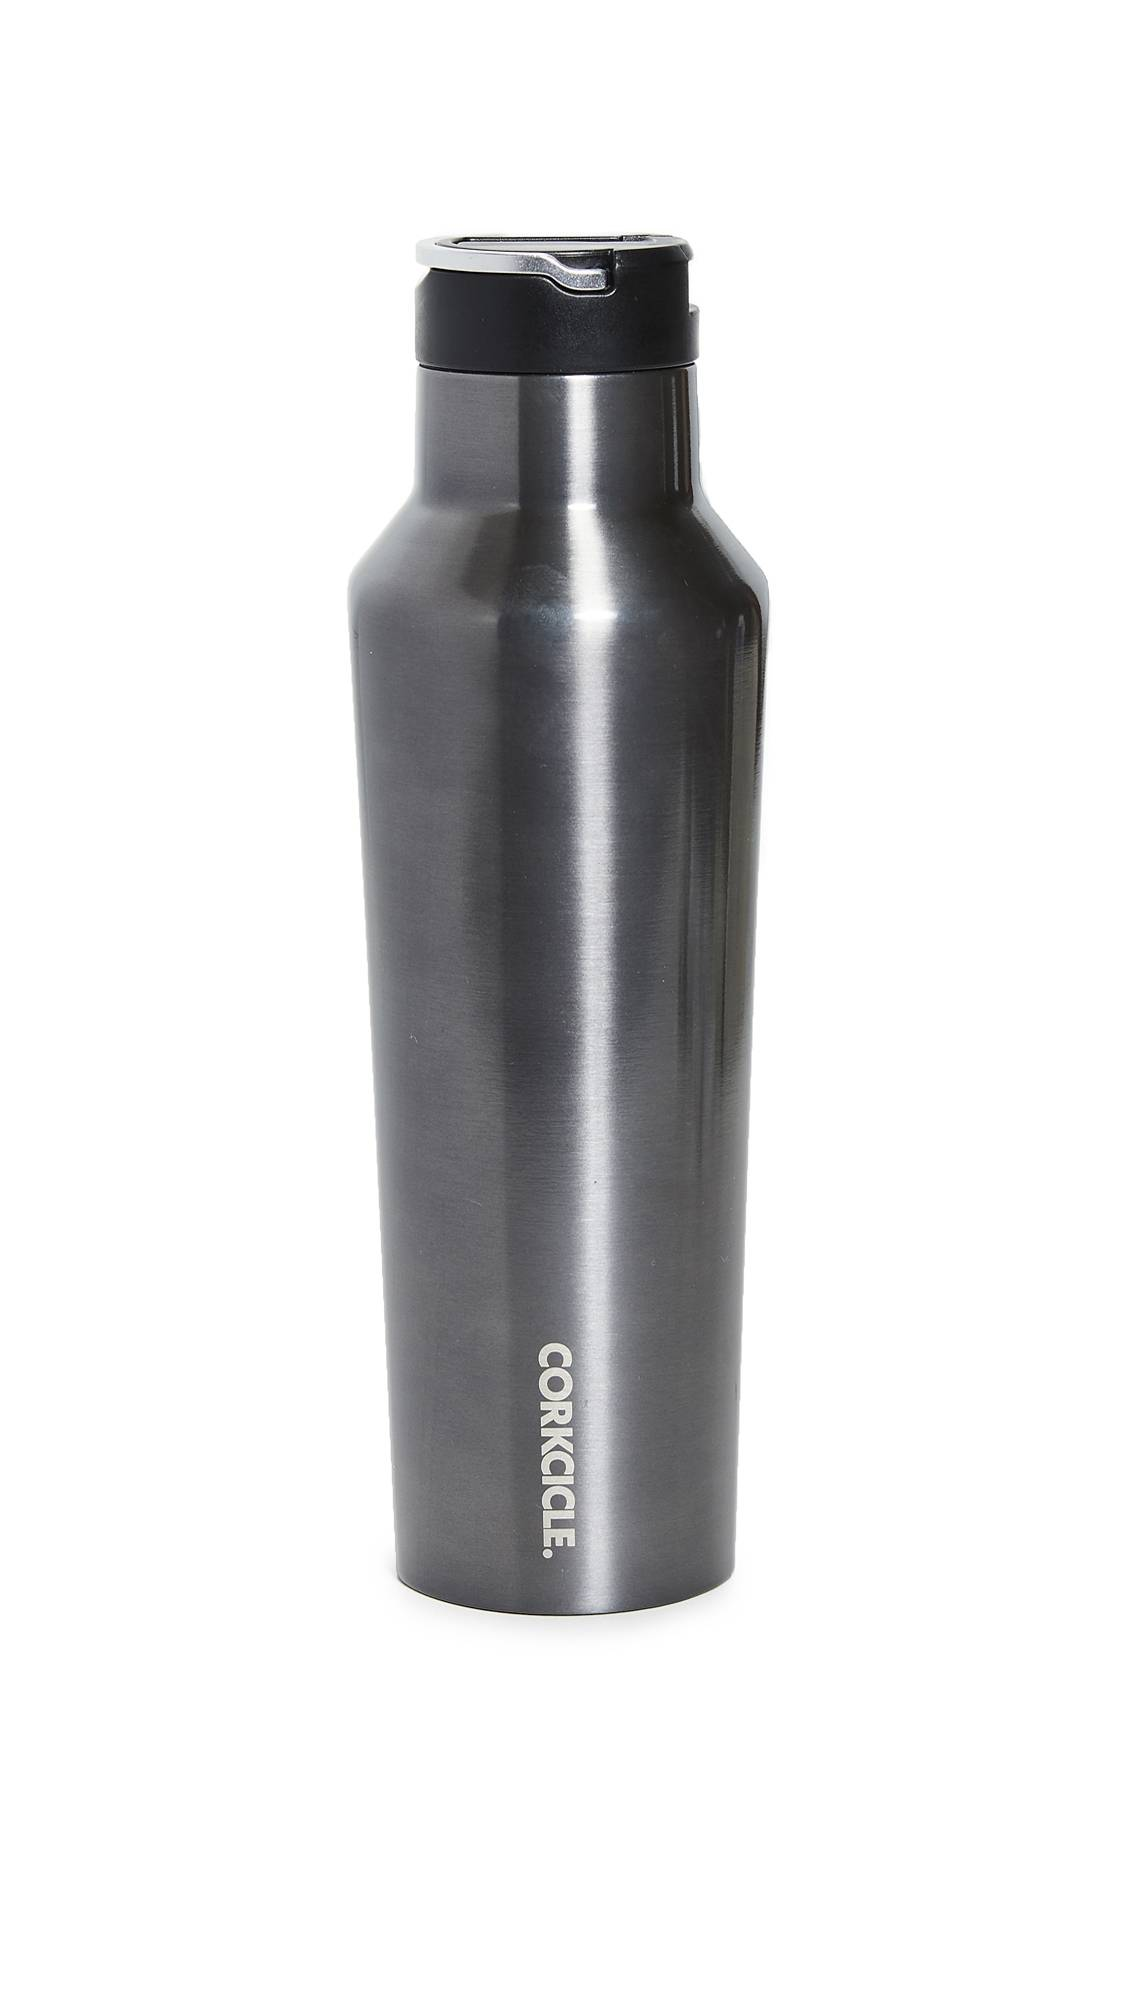 Corkcicle 20oz Canteen - Gunmetal - Size: One Size